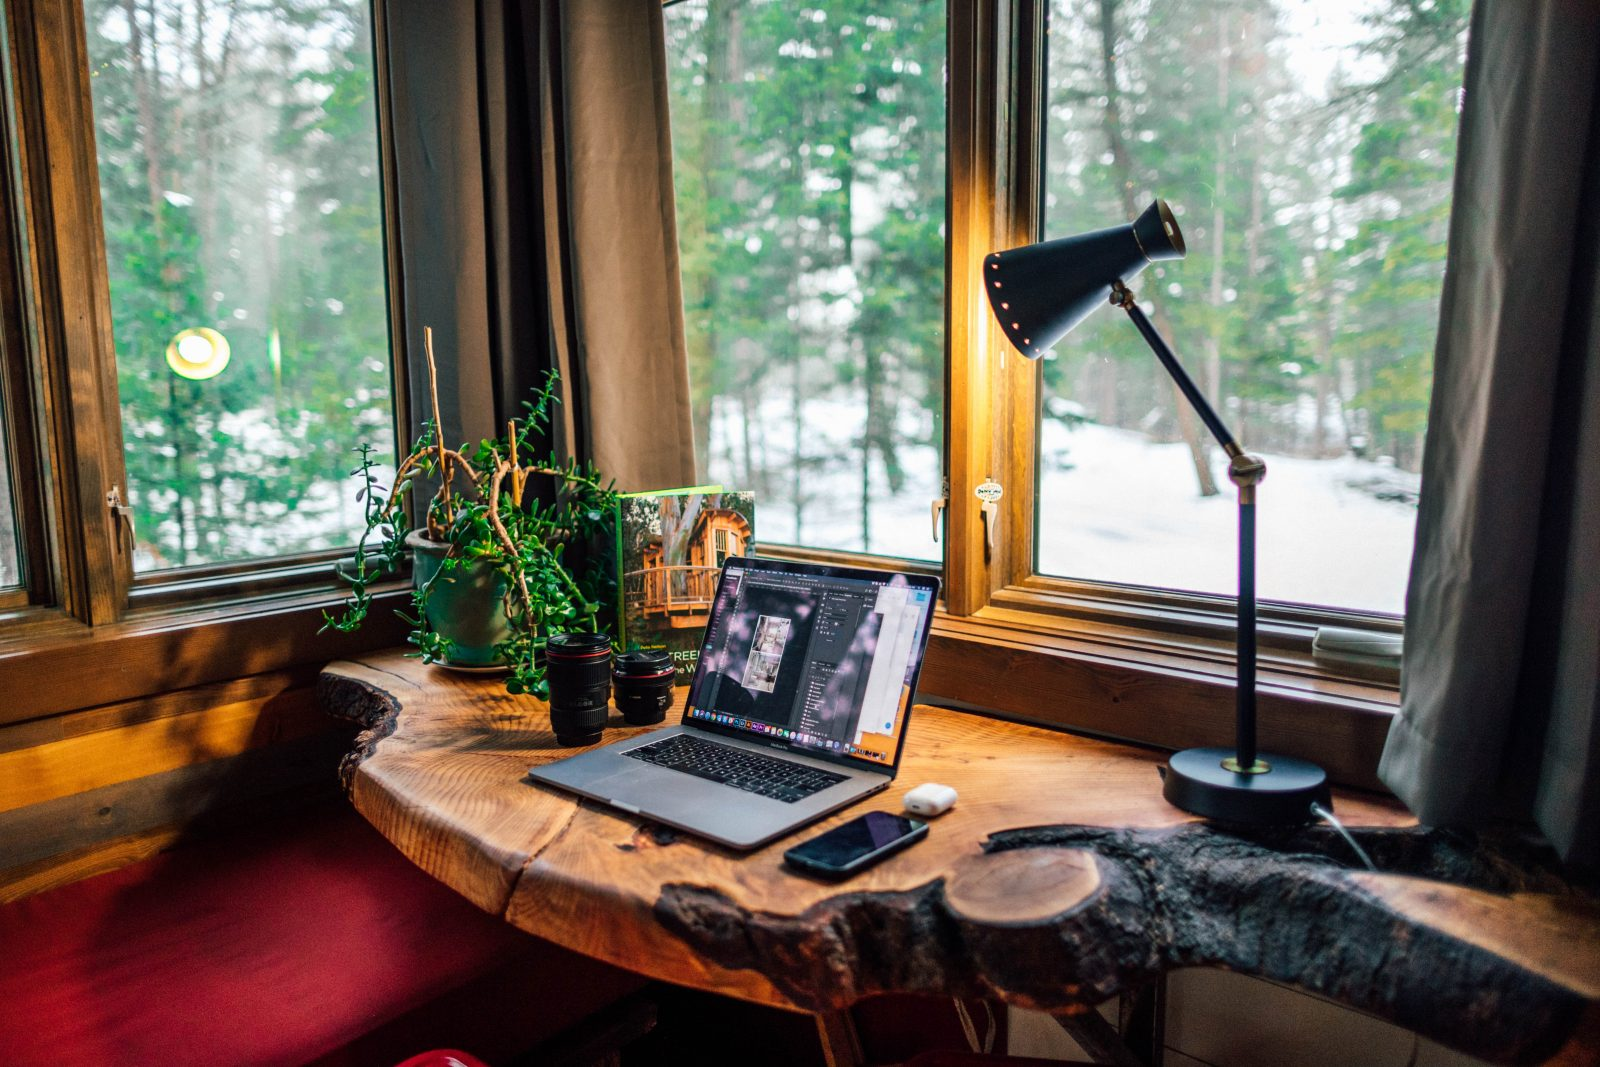 How to stay sane and secure while working from home